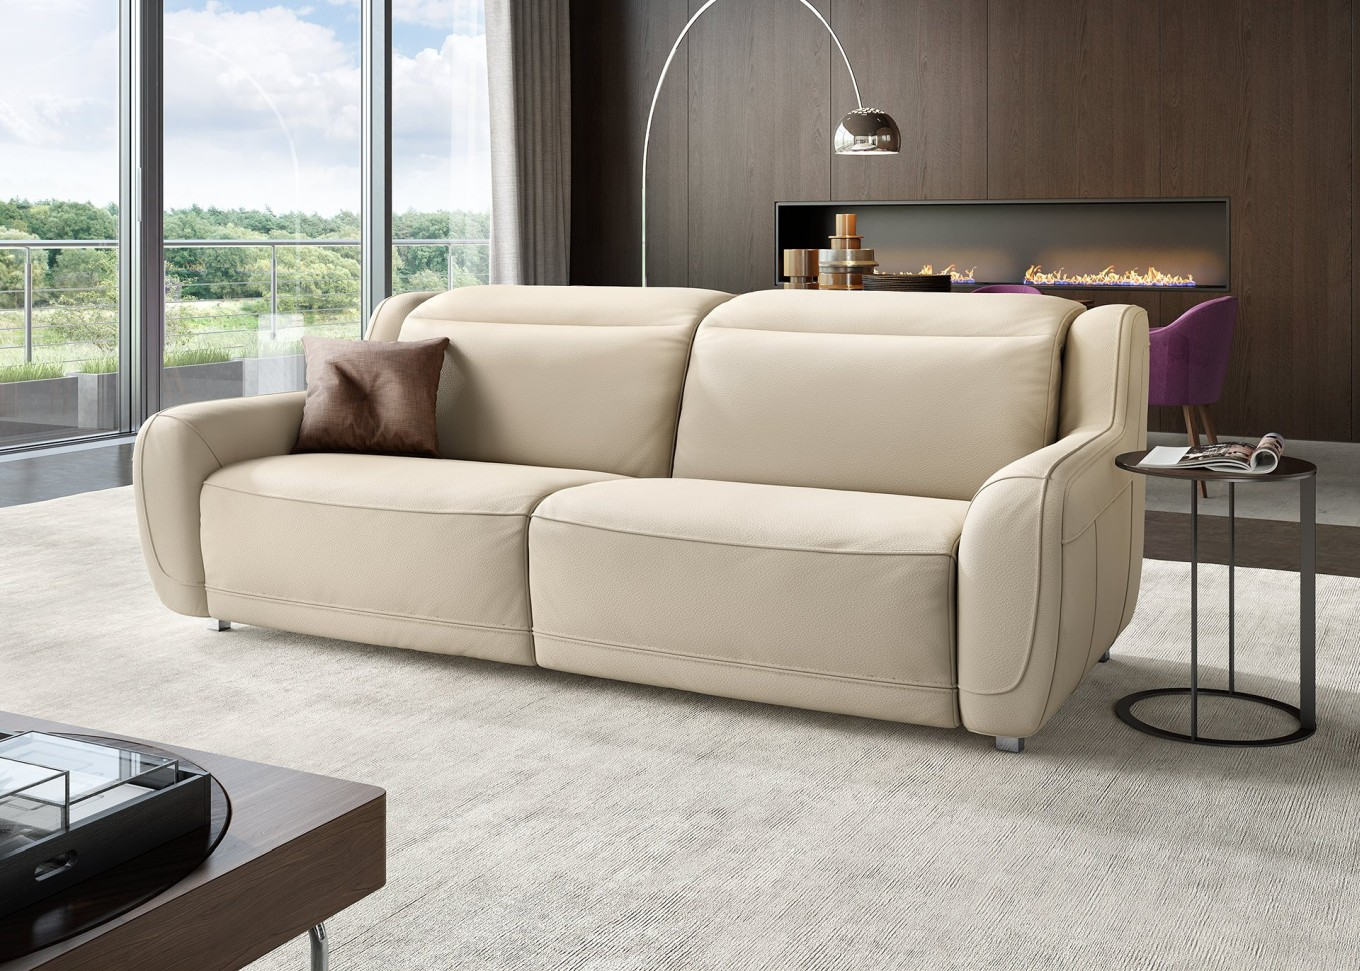 Relax leder sofa garnitur tv sessel couch garnitur for Sofa garnitur